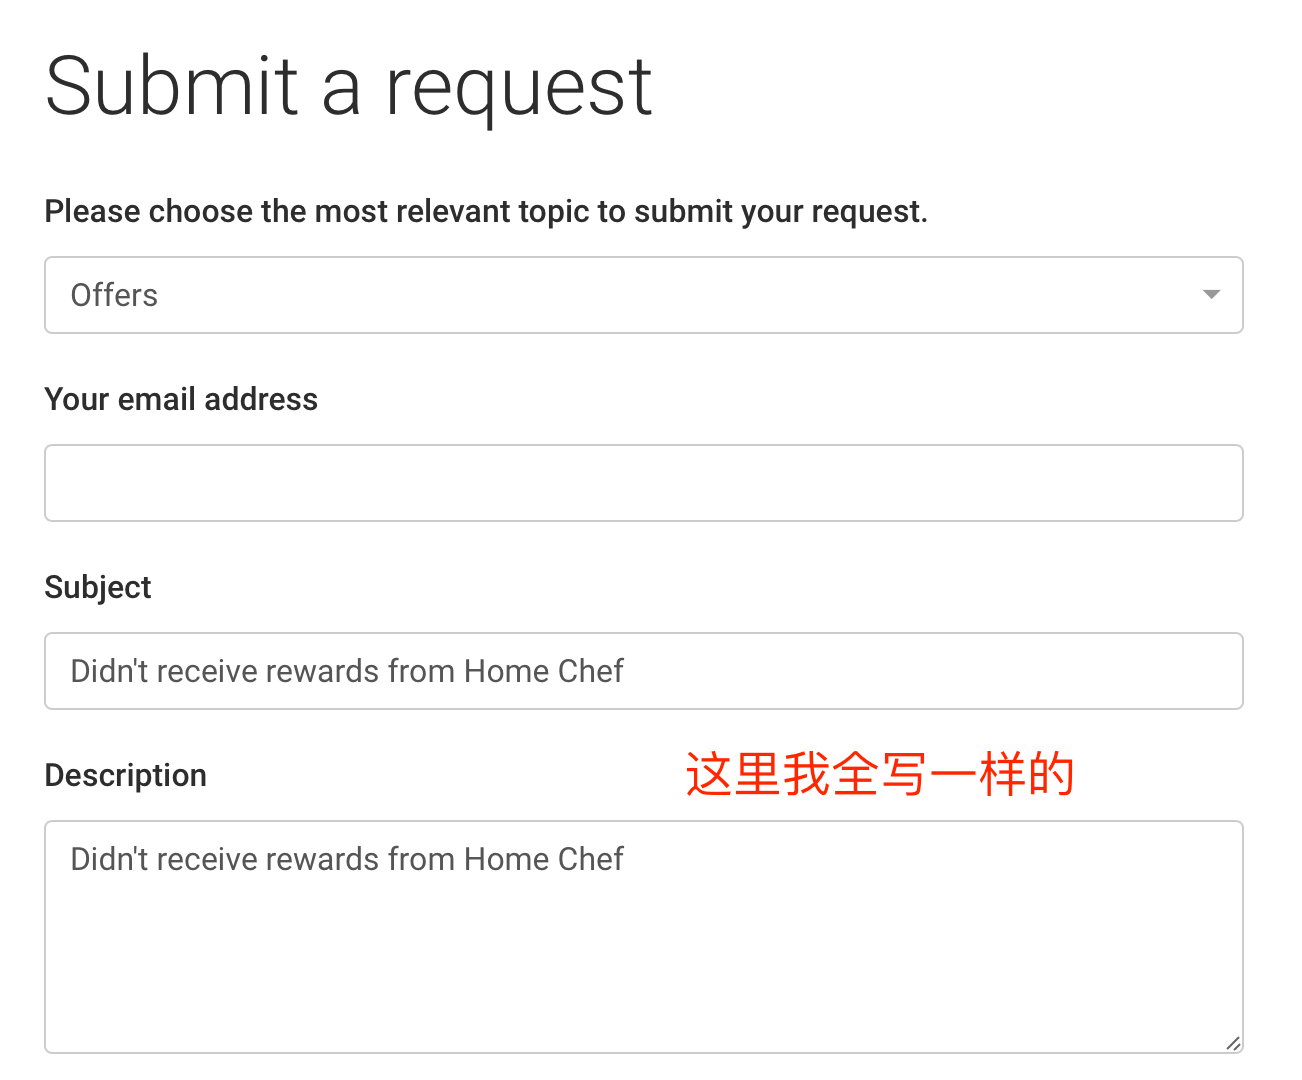 Swagbucks+HomeChef=倒赚+免费晚餐【2/24更新:2000SB Offer】